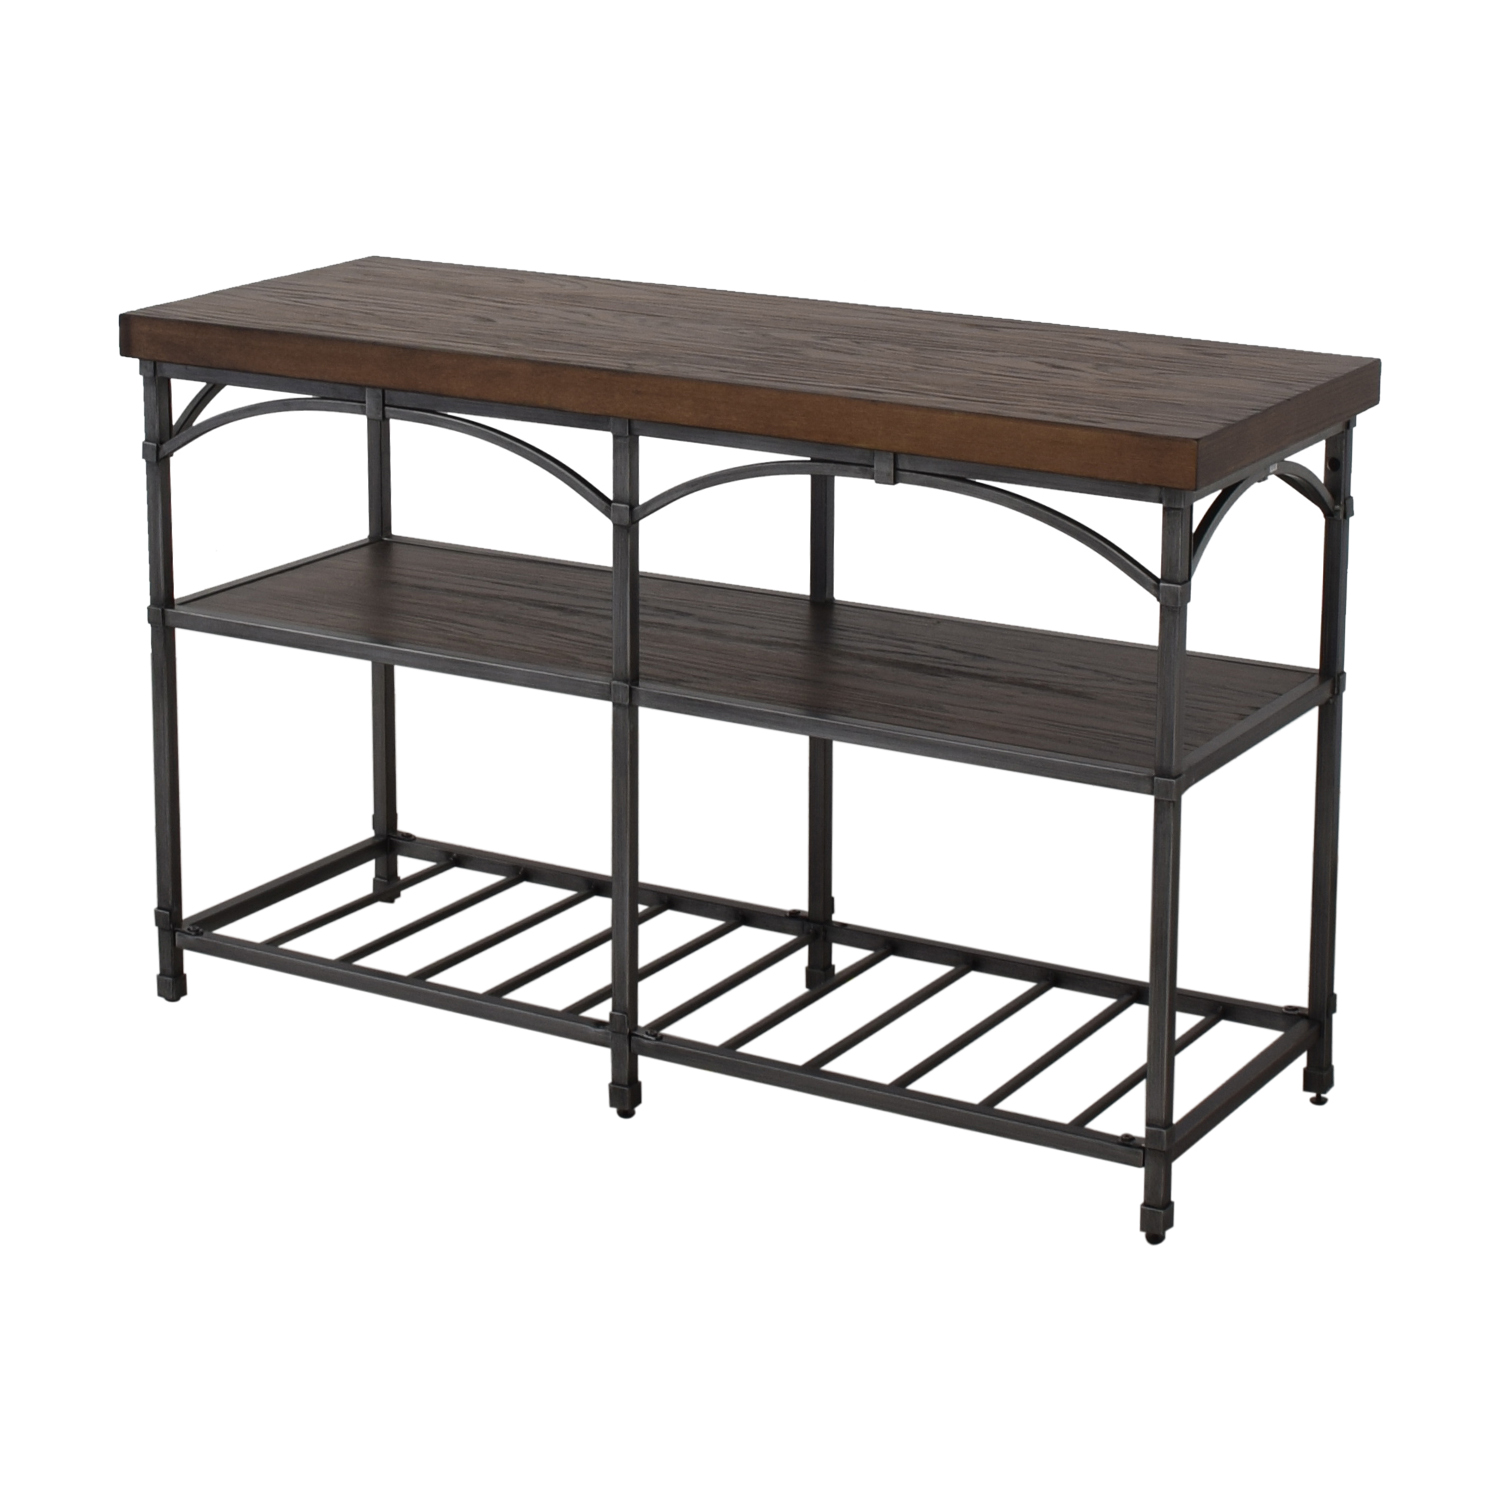 shop Trent Austin Franklin Console Table Trent Austin Design